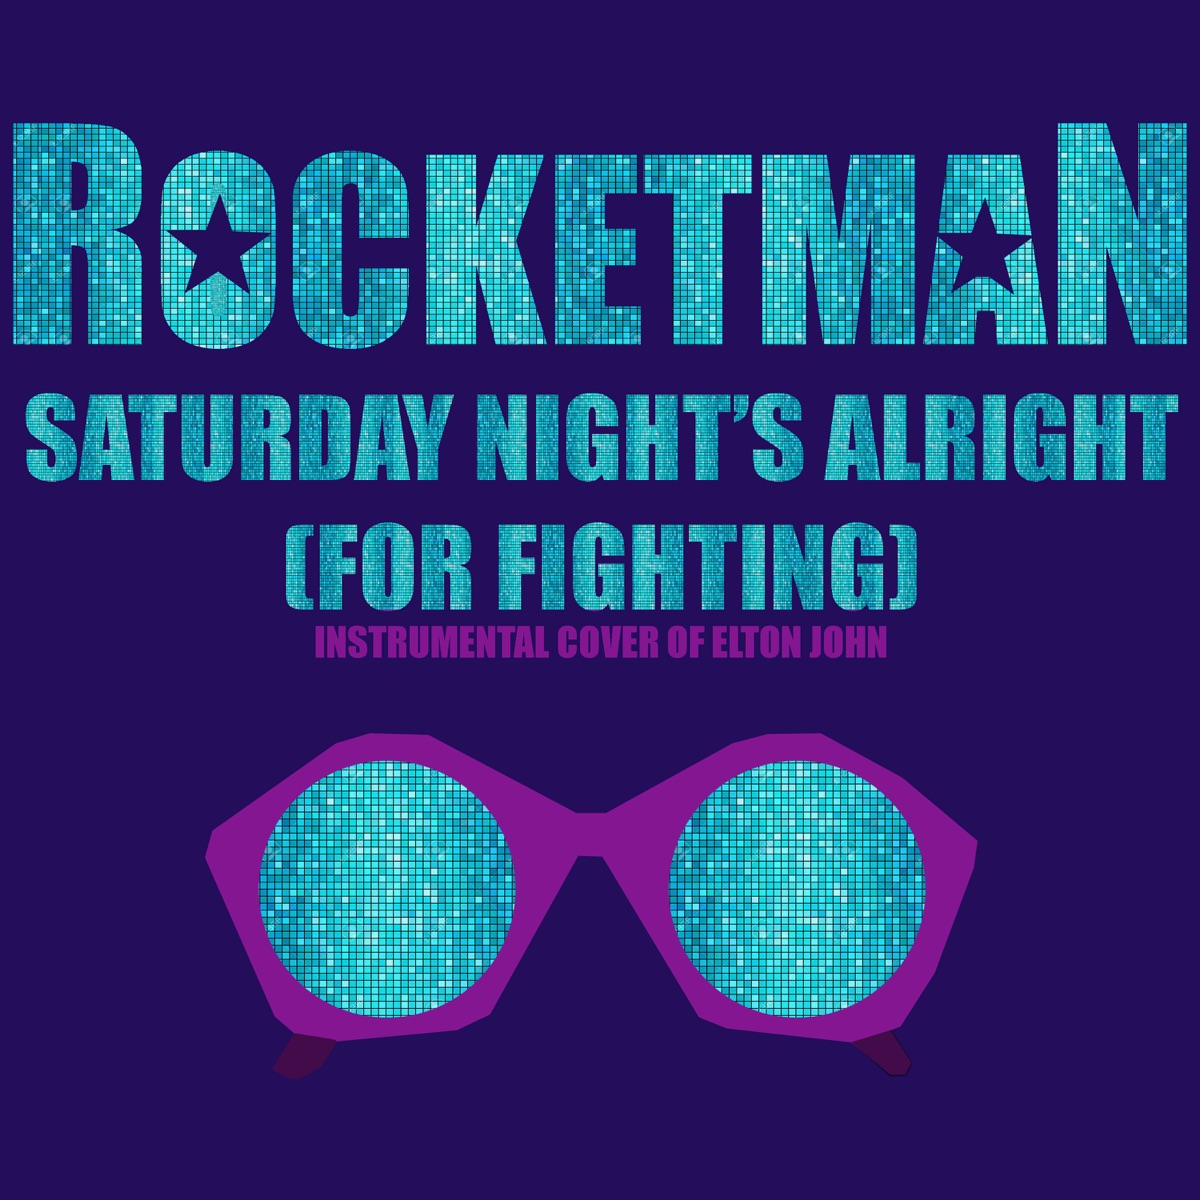 Saturday Nights Alright For Fighting From Rocketman Instrumental Cover of Elton John - Single Rocket Man CD cover